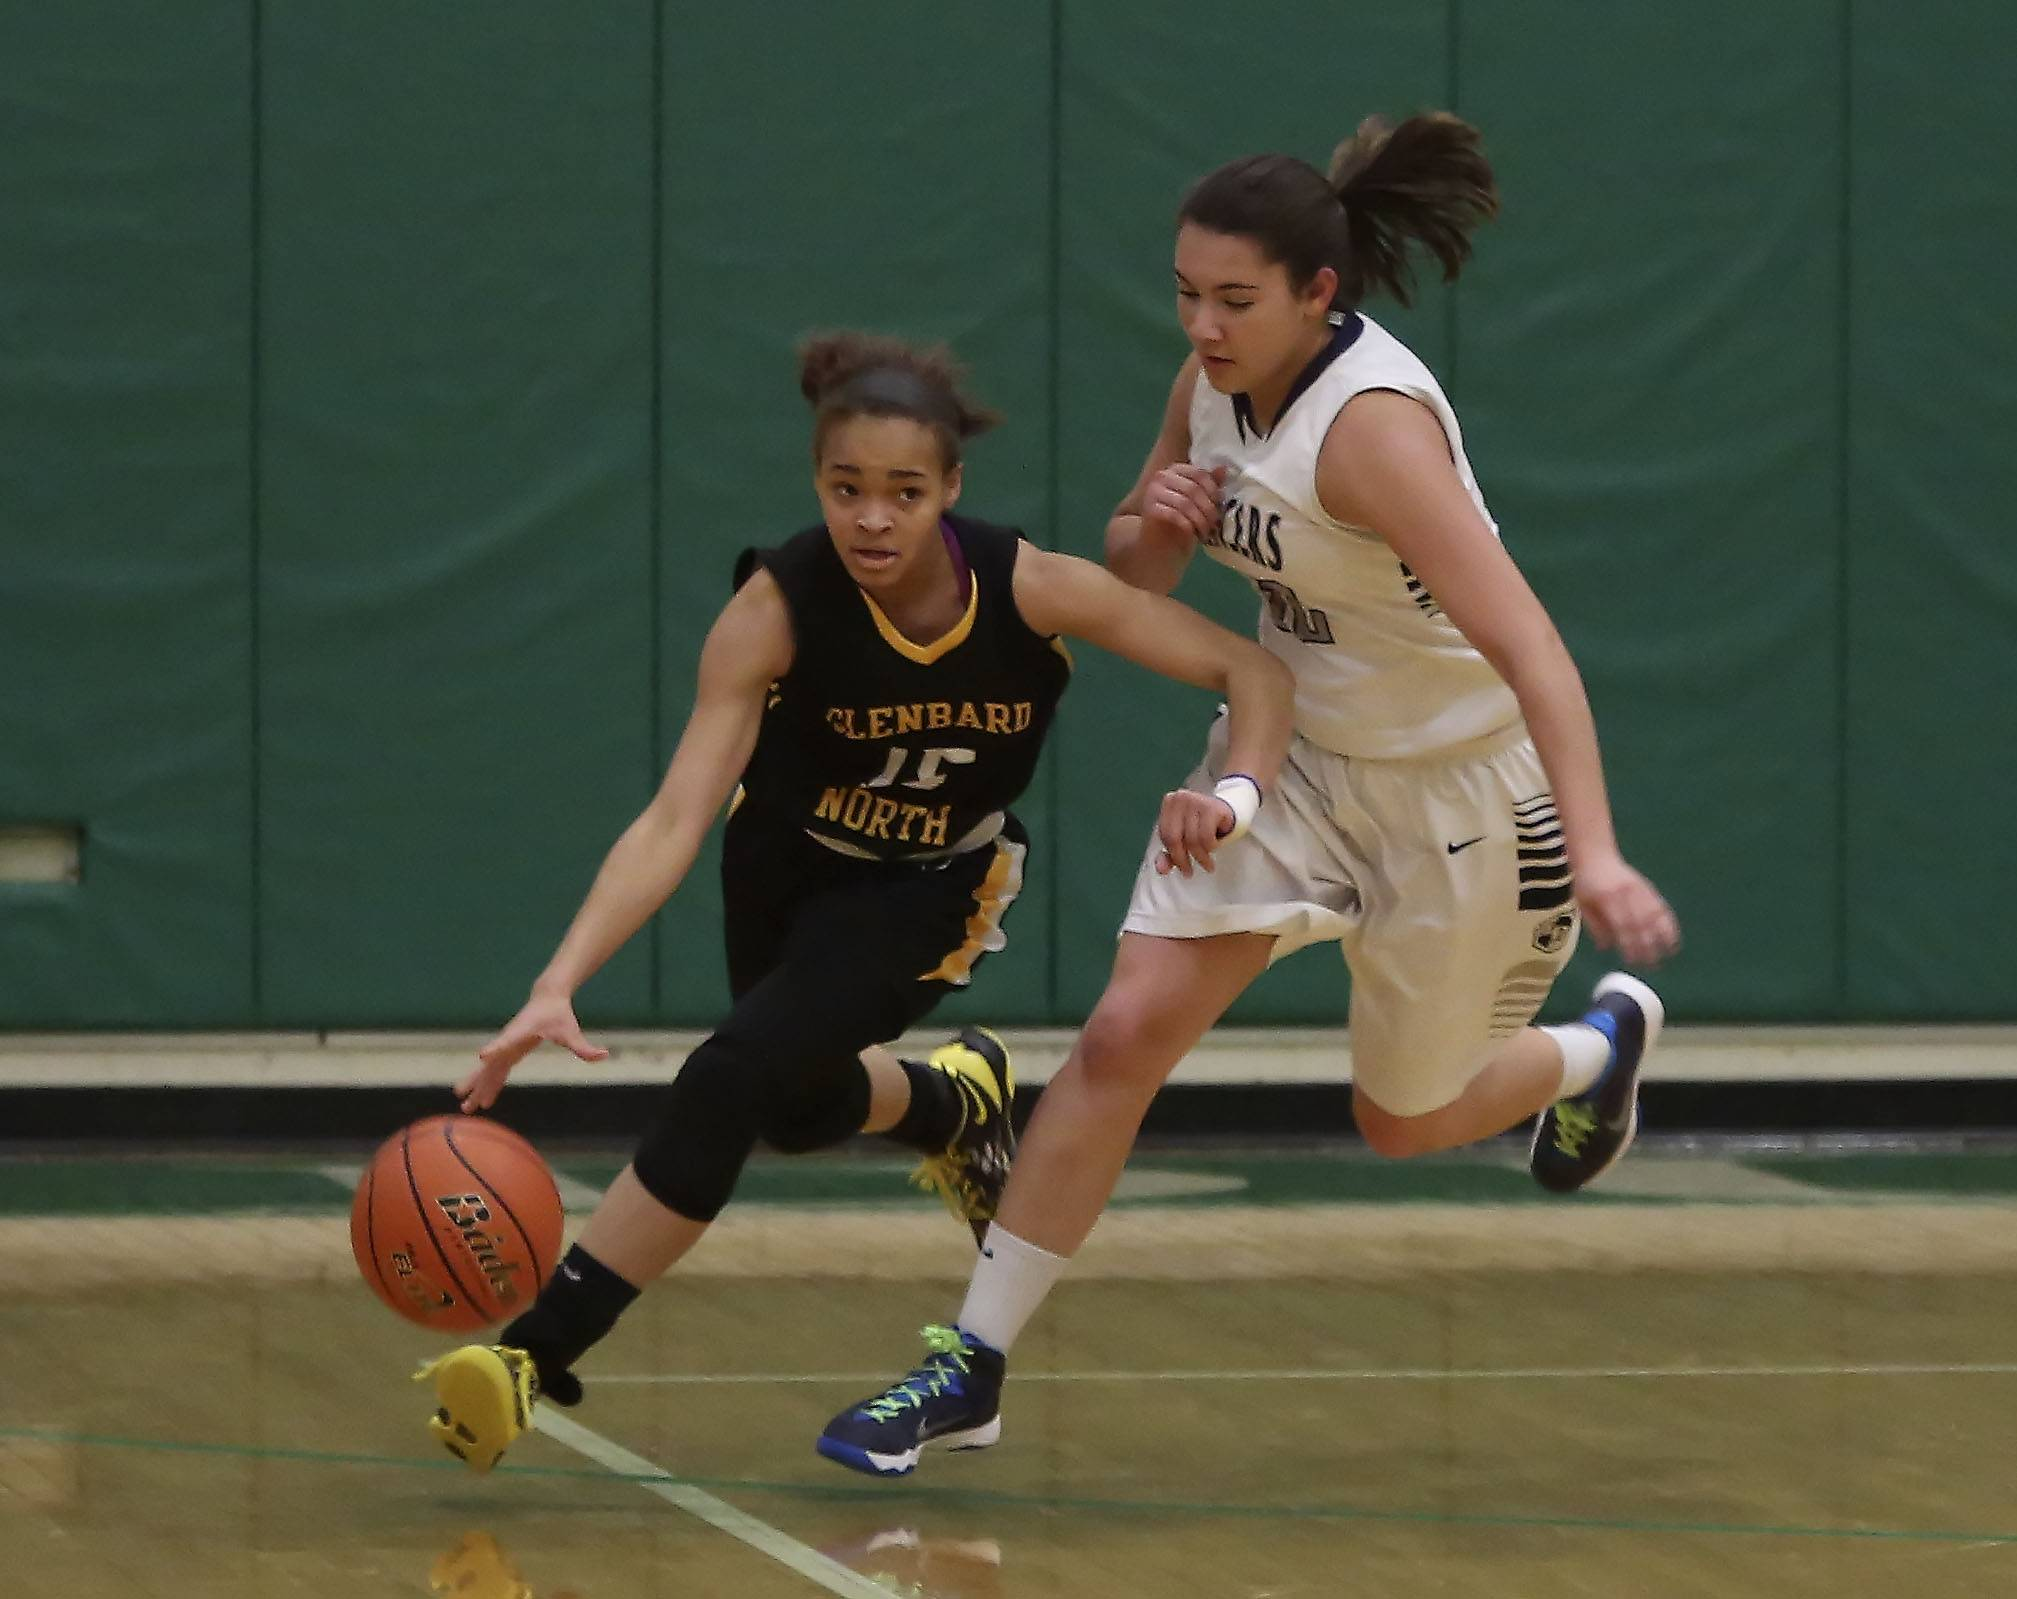 Images: Lake Park vs. Glenbard North girls basketball